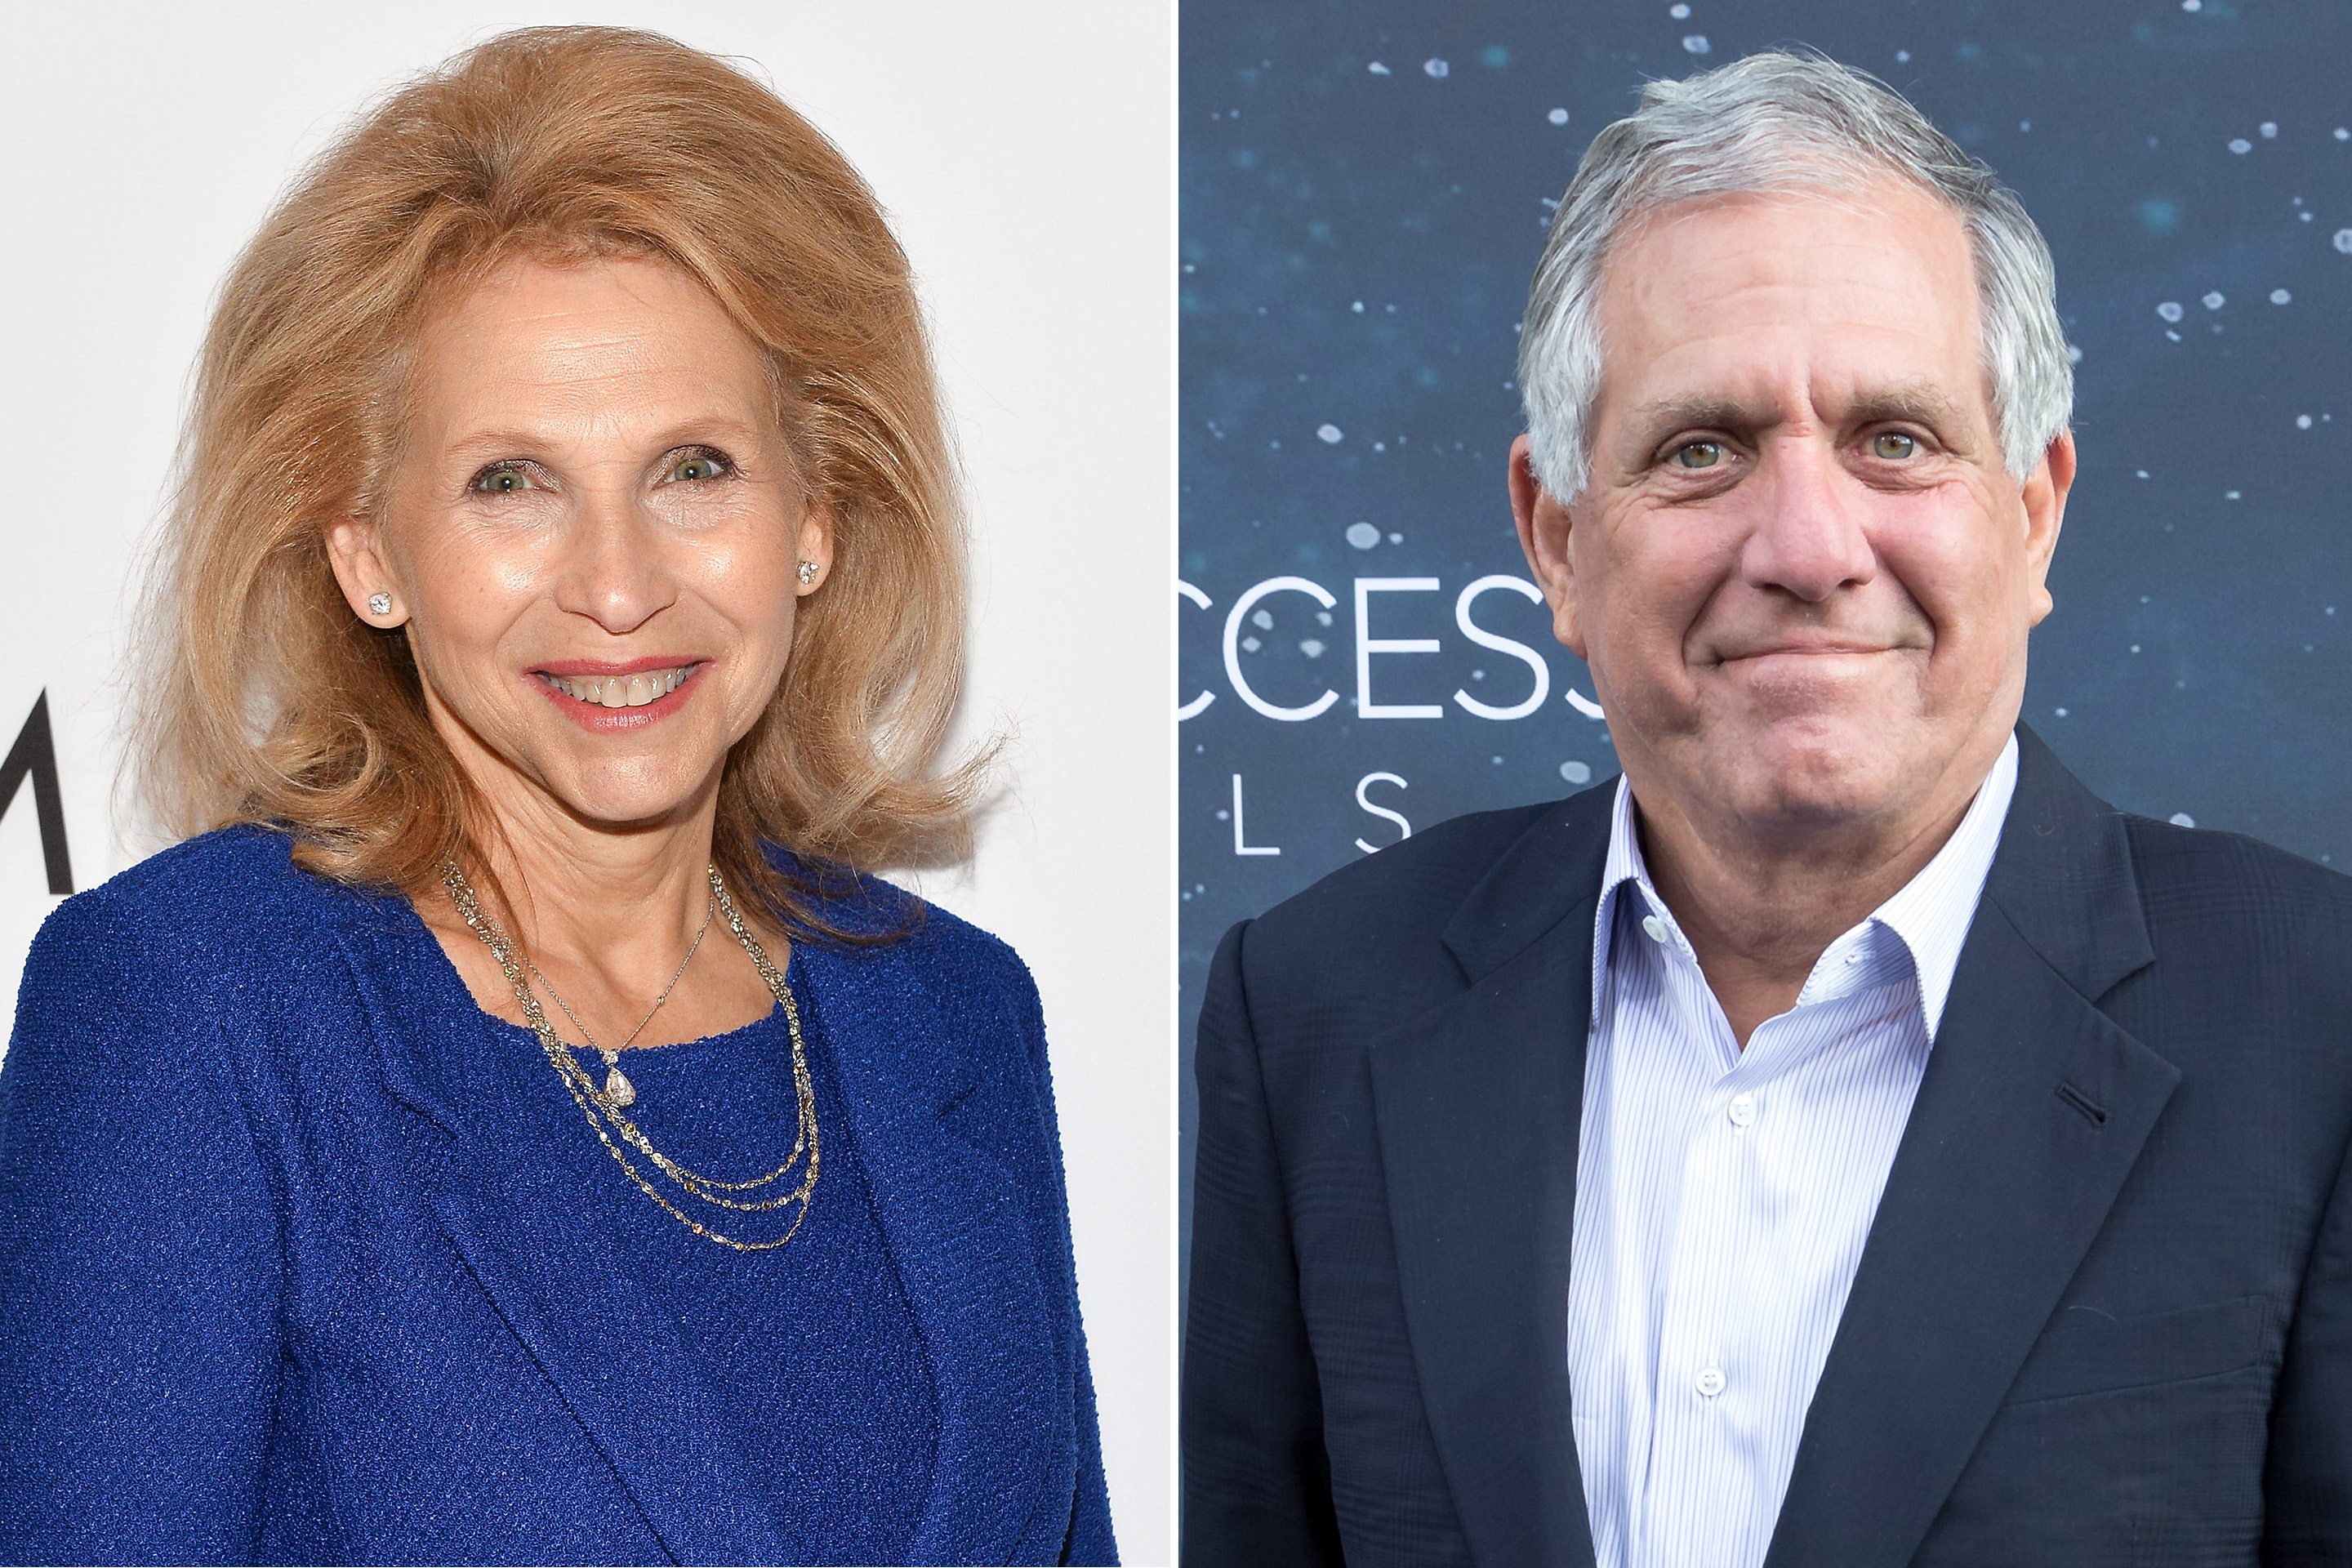 Shari Redstone, left, and Les Moonves.